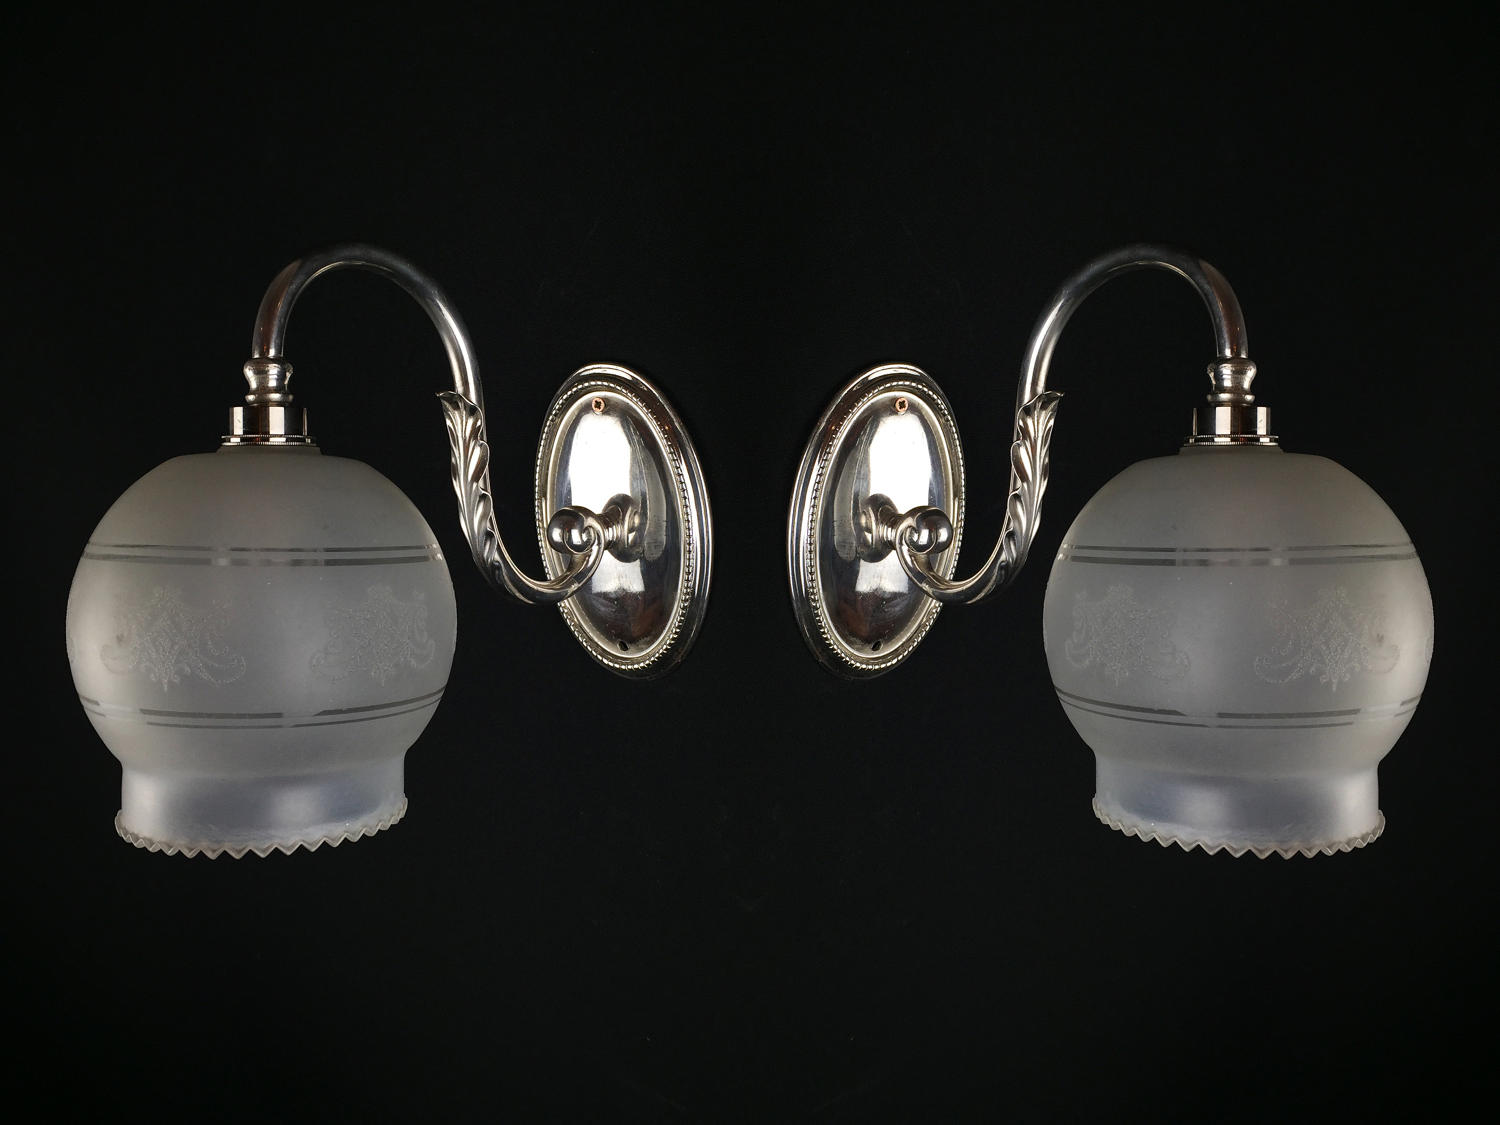 A pair of Edwardian silver plated single arm wall lights